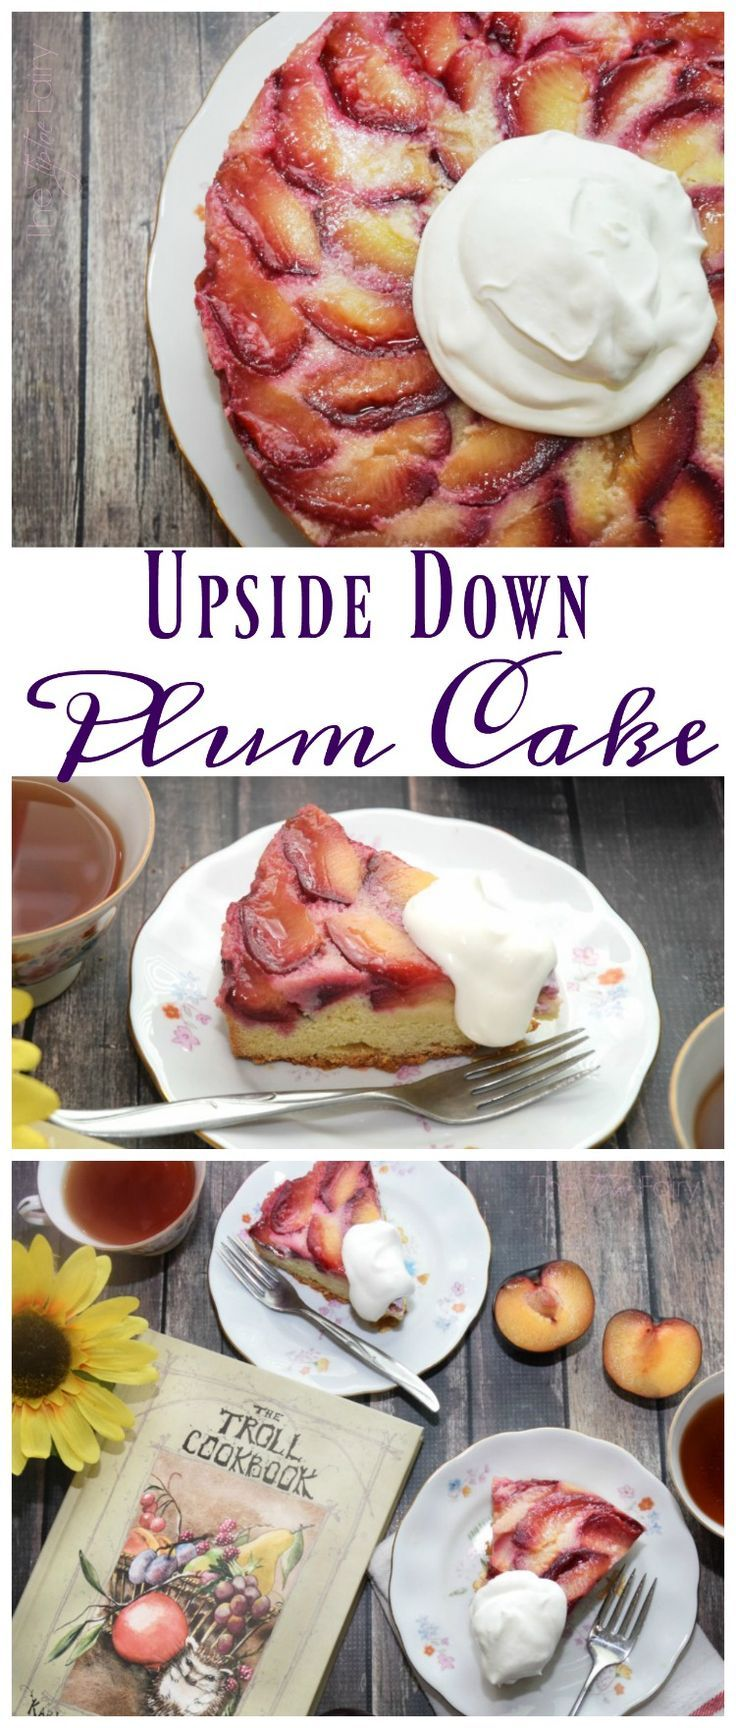 What can you with all that summer stone fruit like plums, peaches, or apricots?  Try this absolutely amazing Upside Down Plum Cake inspired by The Troll Cookbook! Come see my review for this wonderful book! #ad